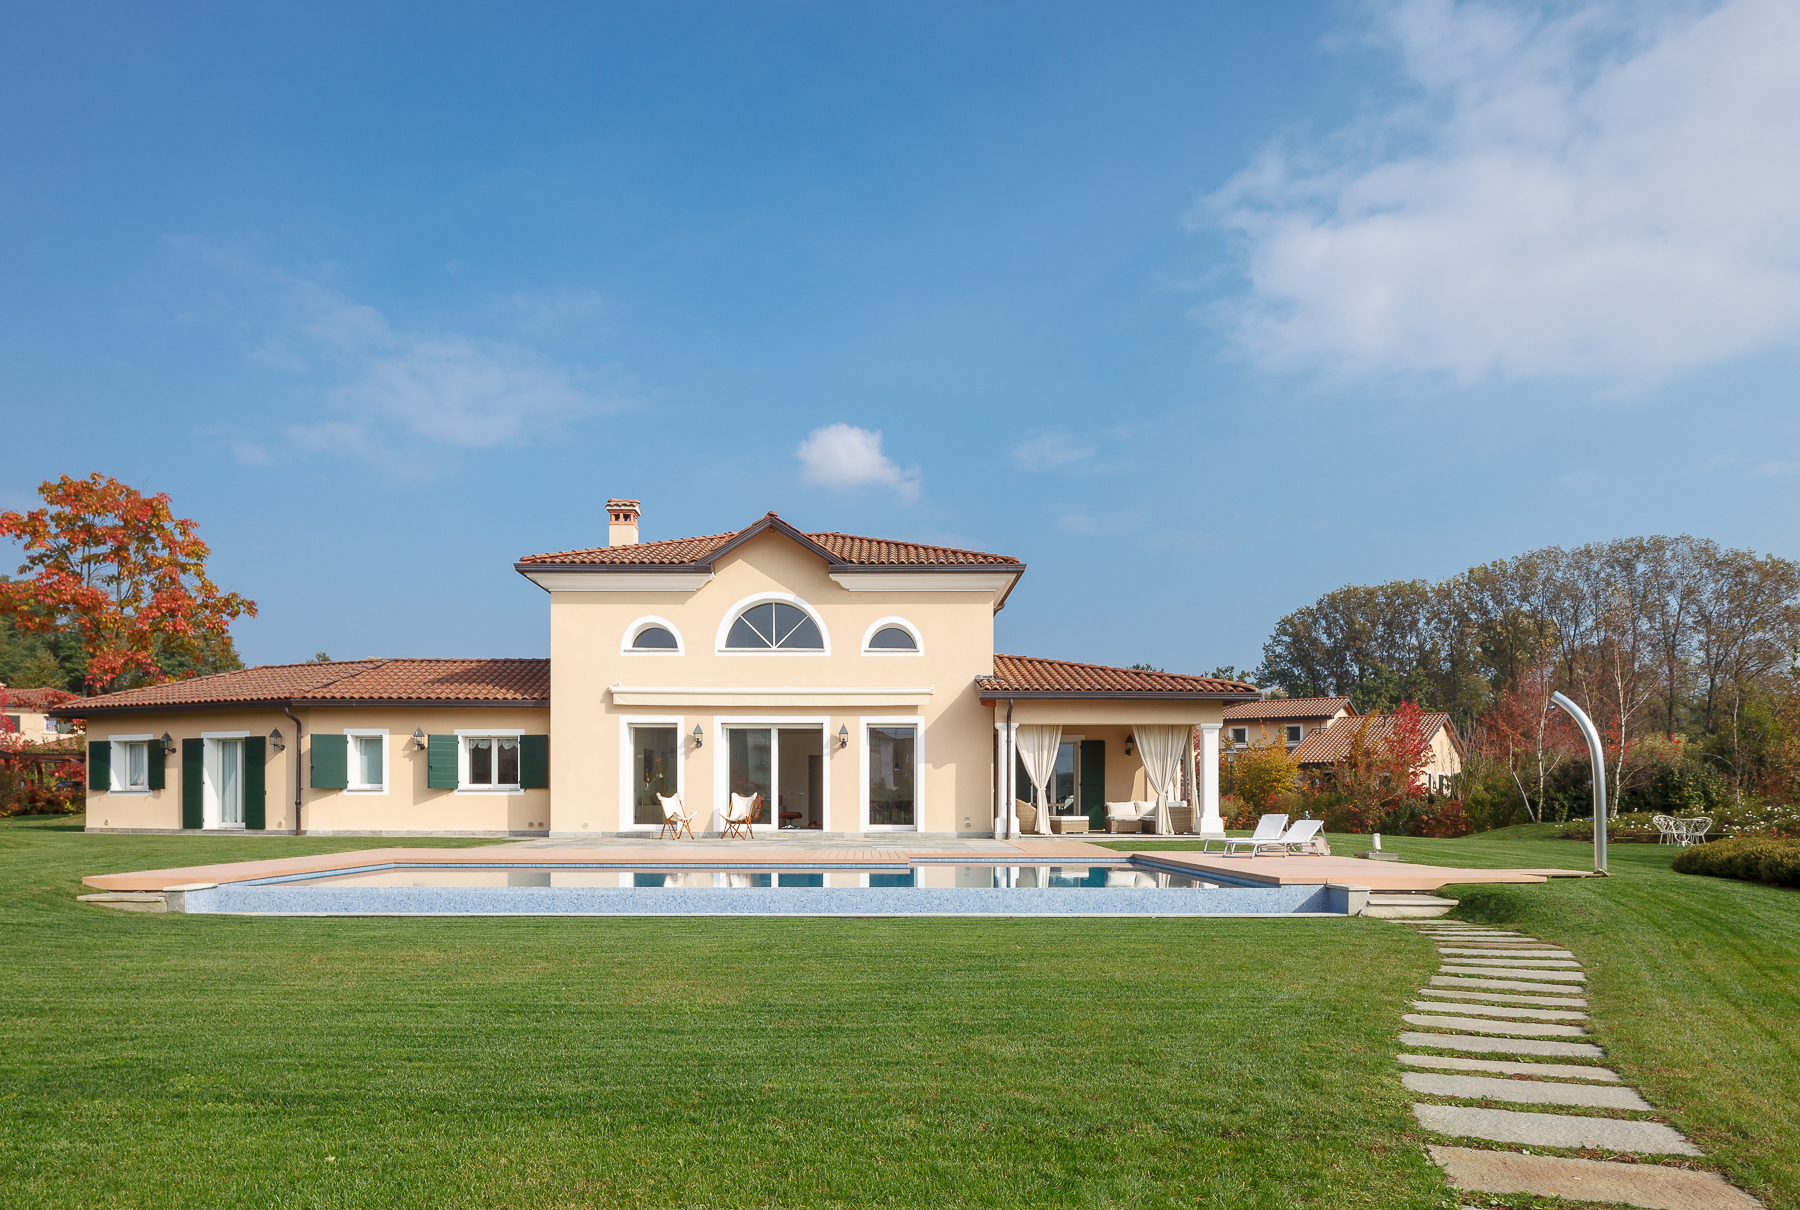 Single Family Home for Sale at Wonderful villa on two levels within the Golf Club of Bogogno Via San Isidoro Bogogno, 28010 Italy